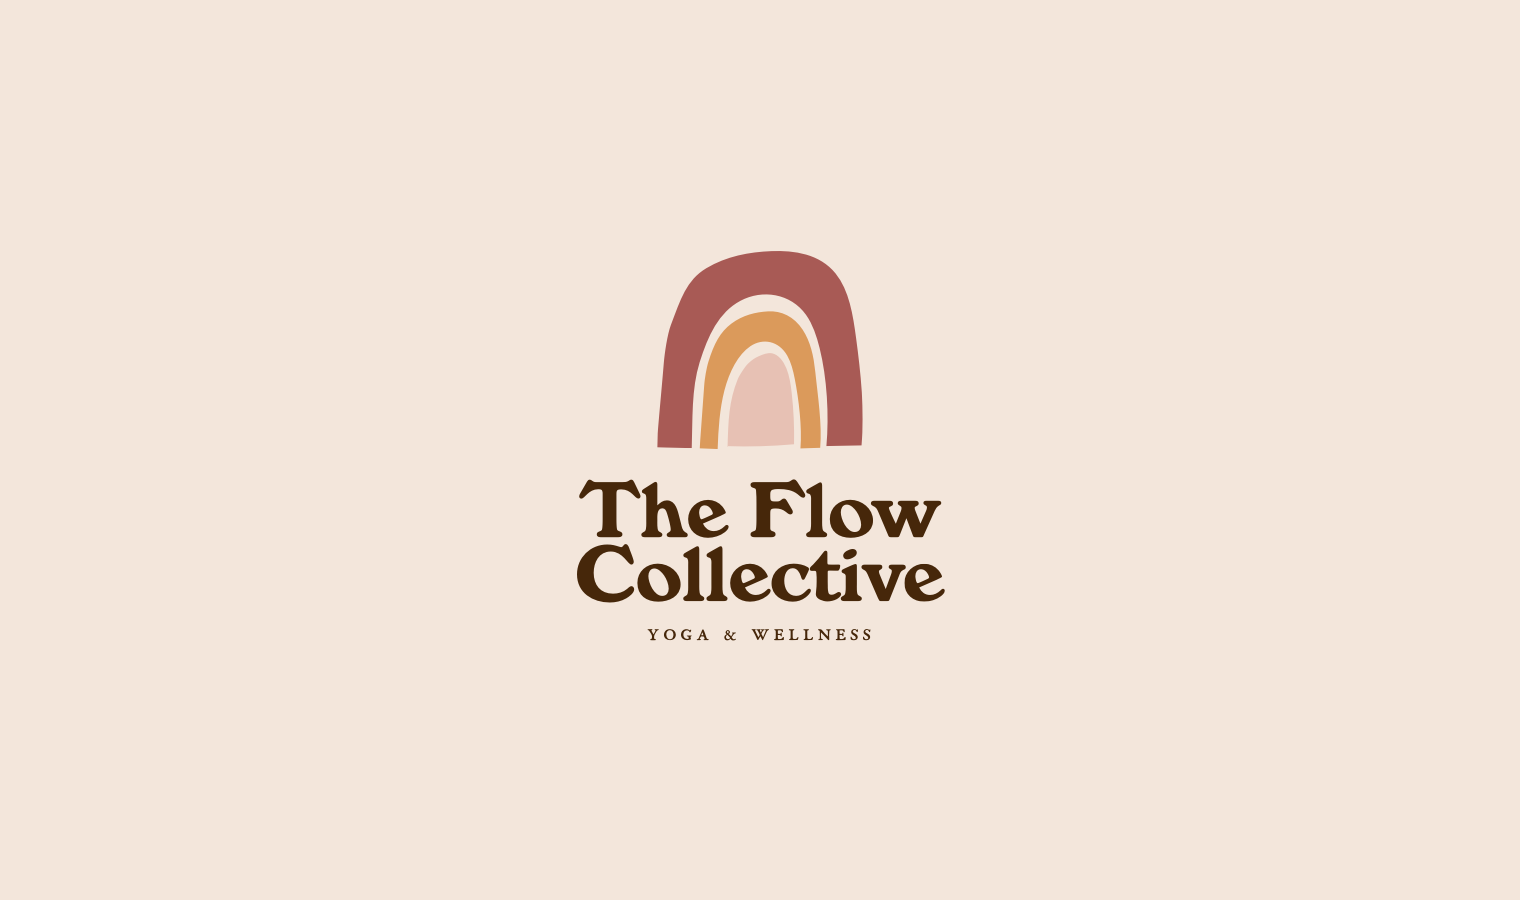 The-Flow-Collective-Yoga-Wellness-Meditation-Branding-02.png